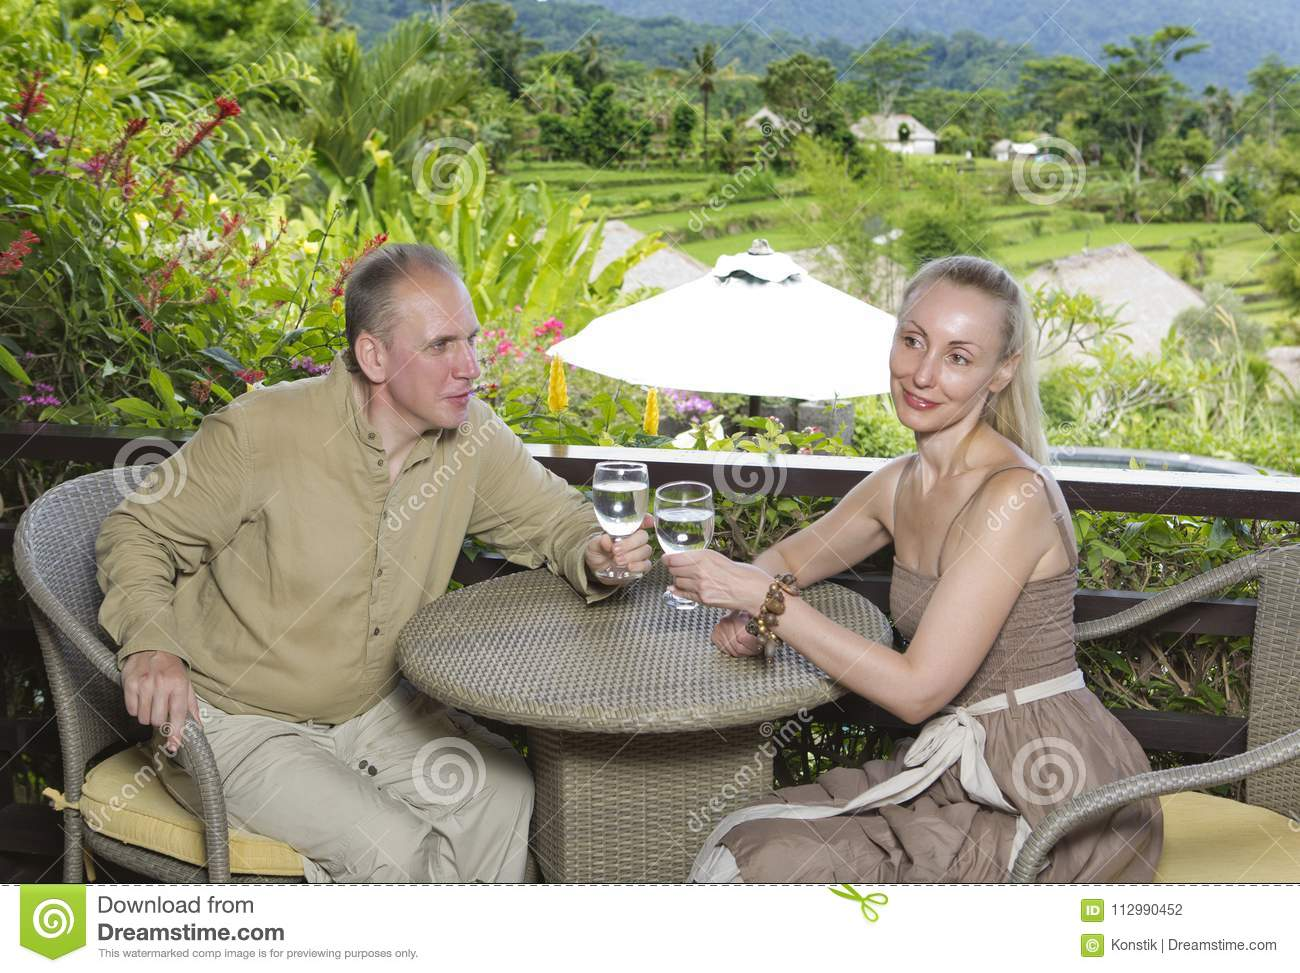 The man and the woman with glasses sit on a balcony overlooking rice terraces and mountains